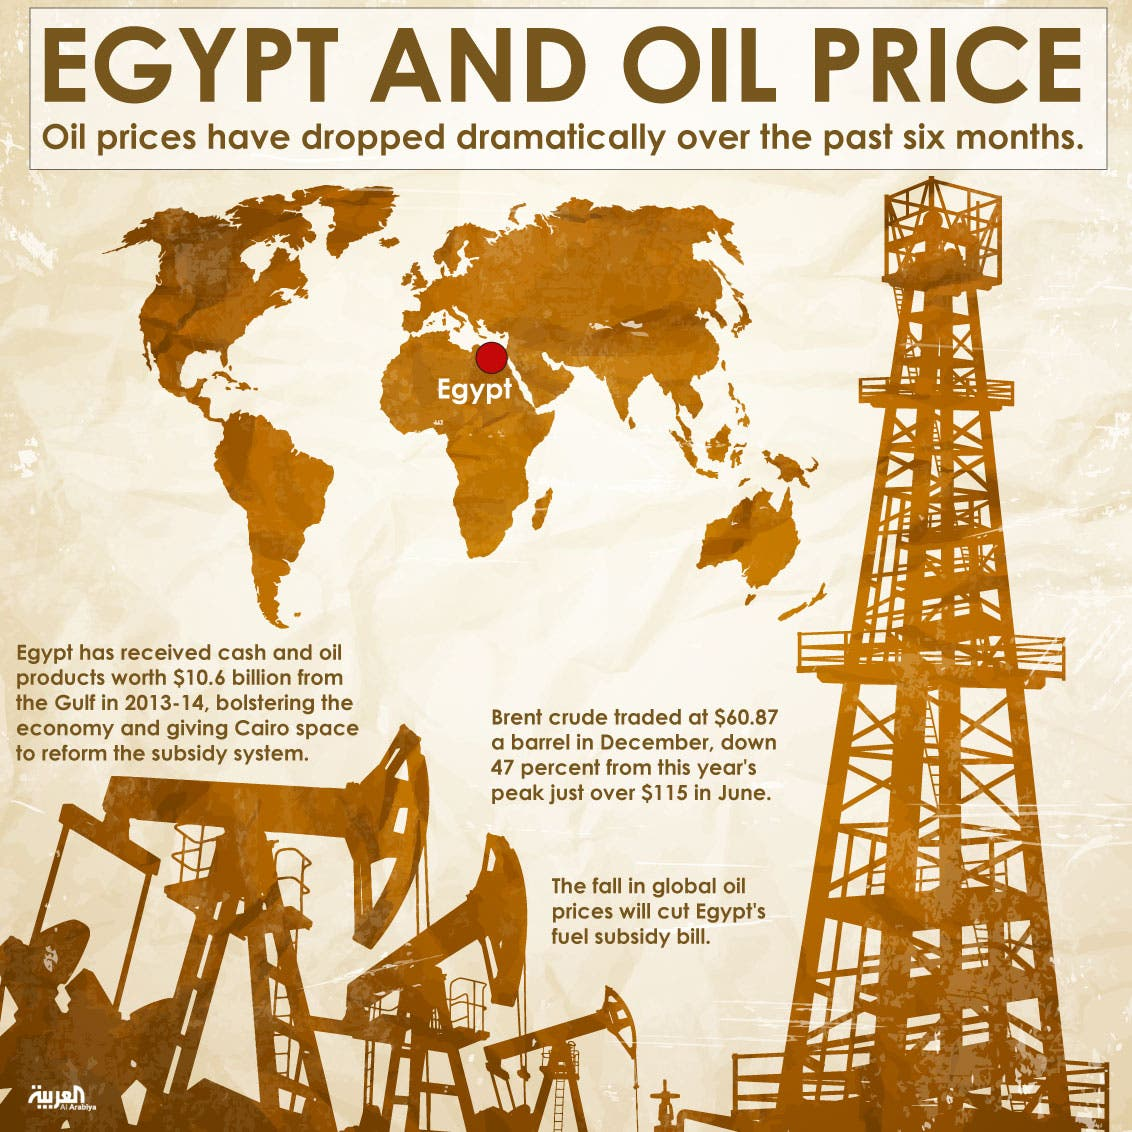 Infographic: Egypt and oil price